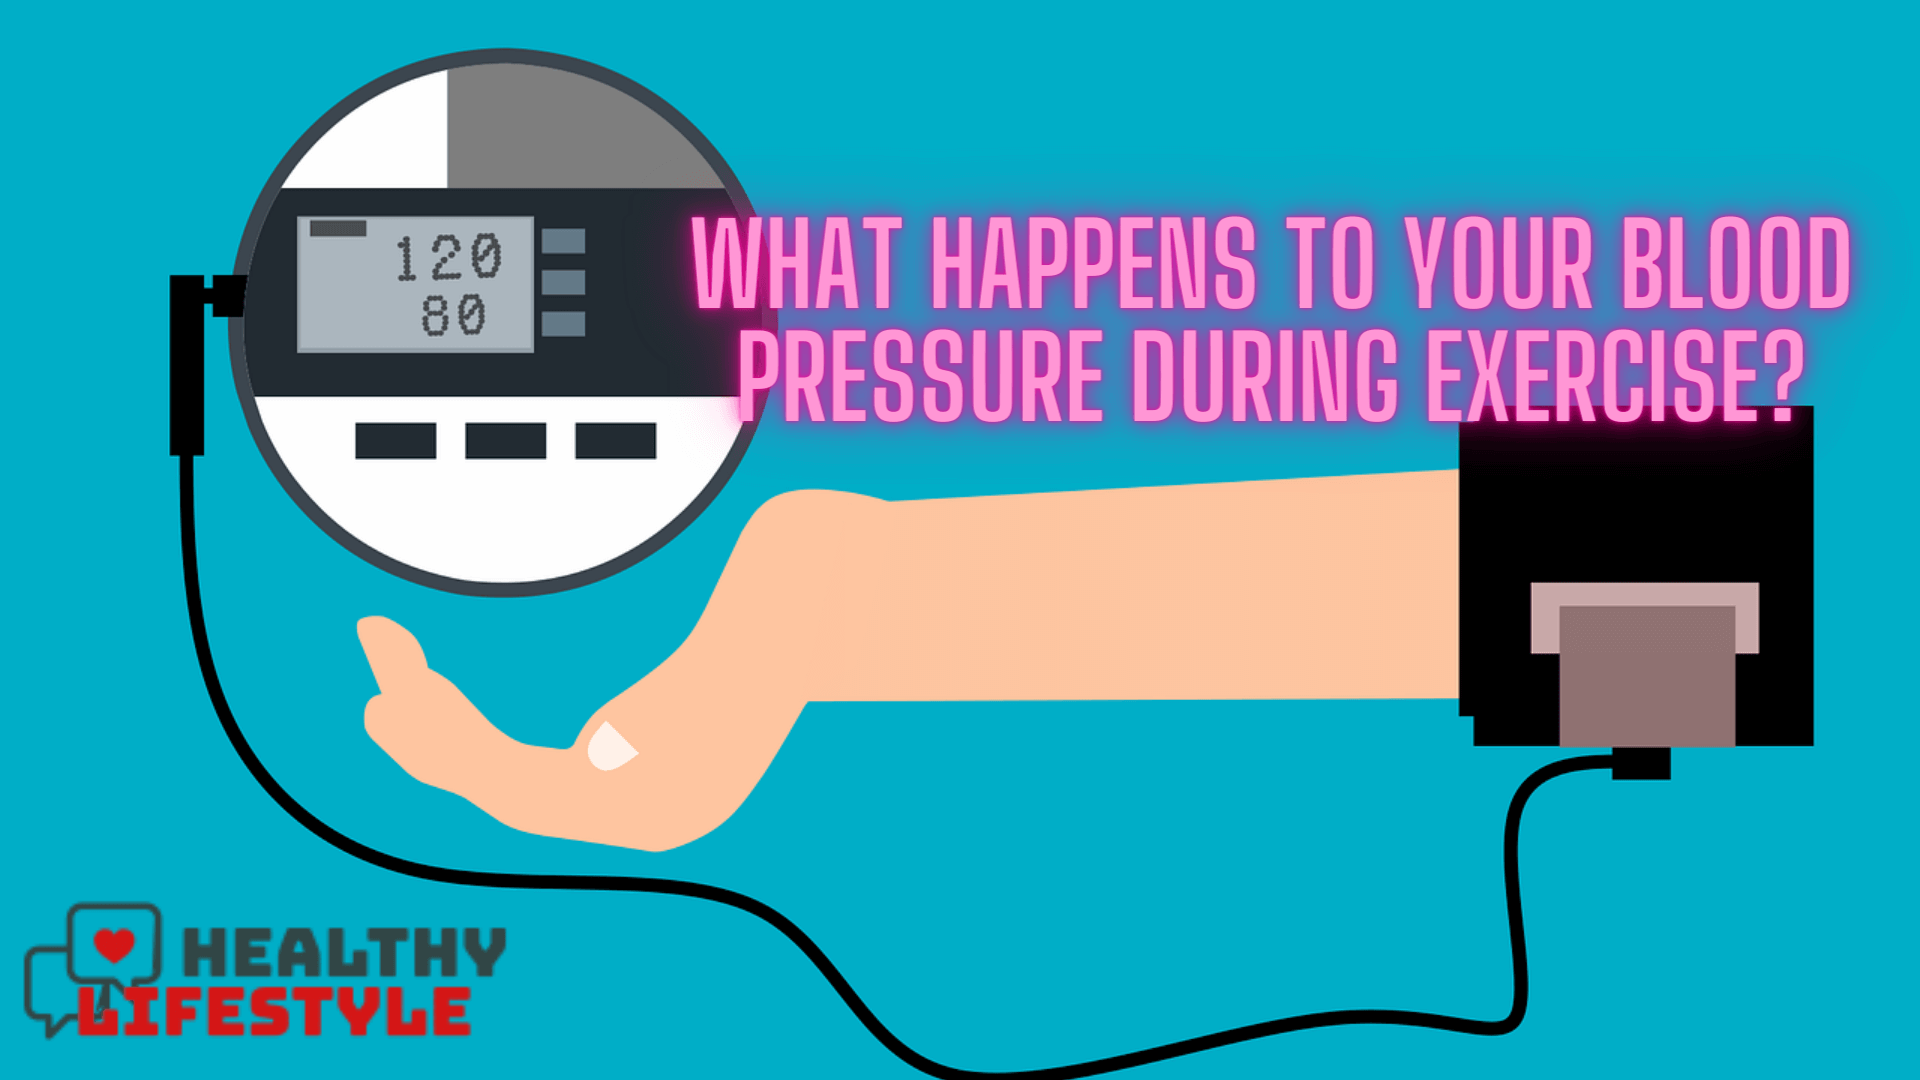 blood pressure during exercise